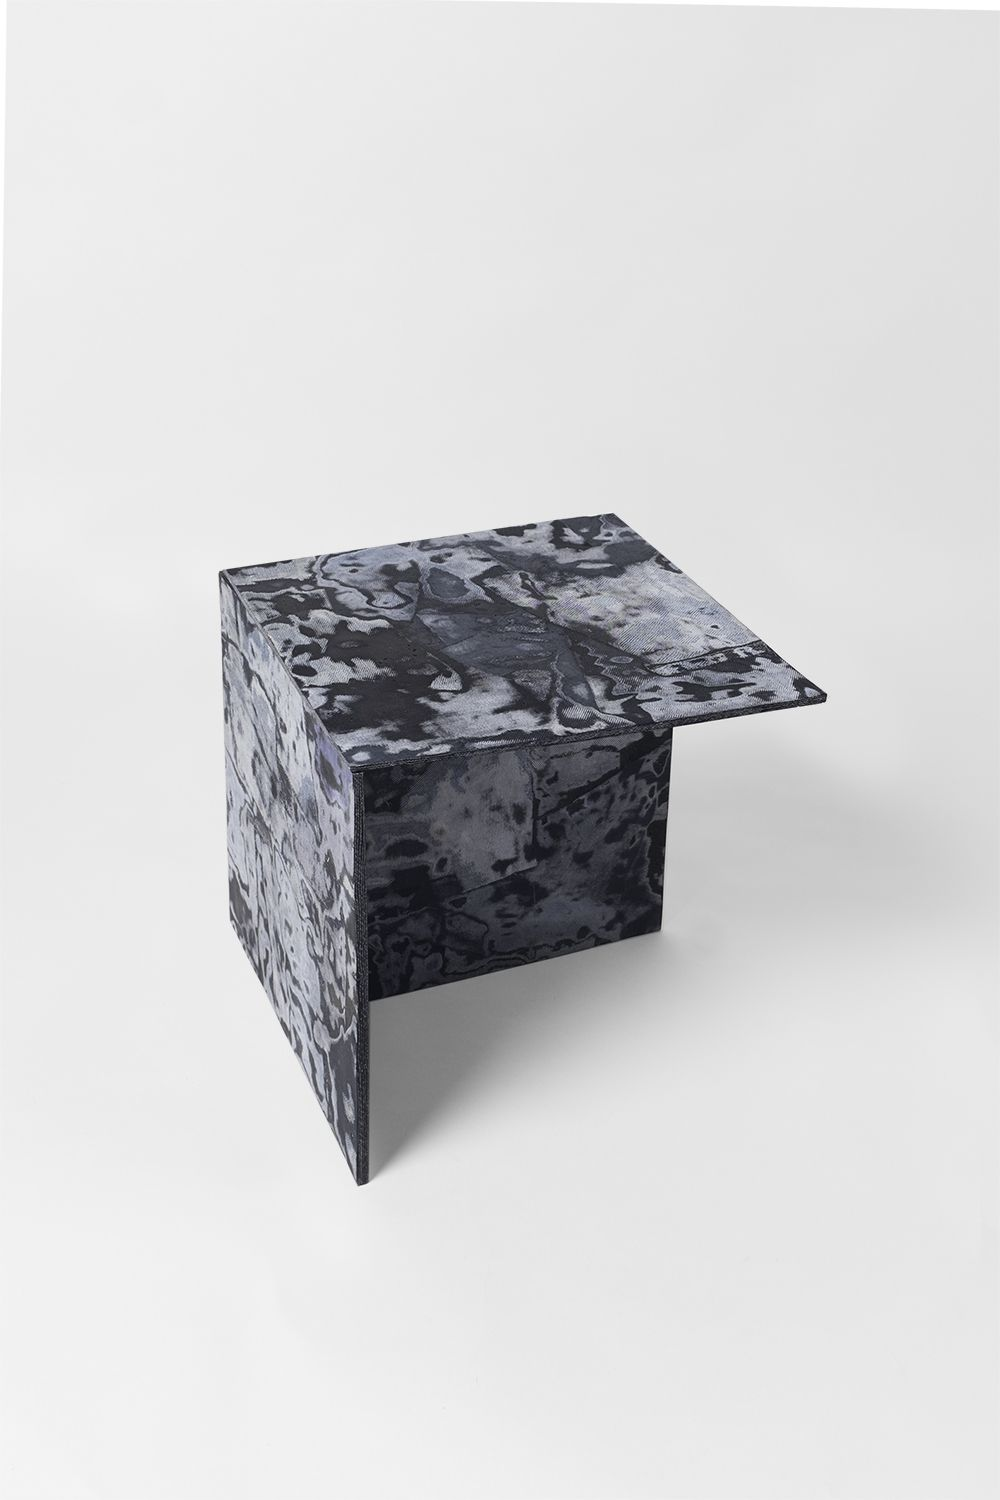 Table with square top